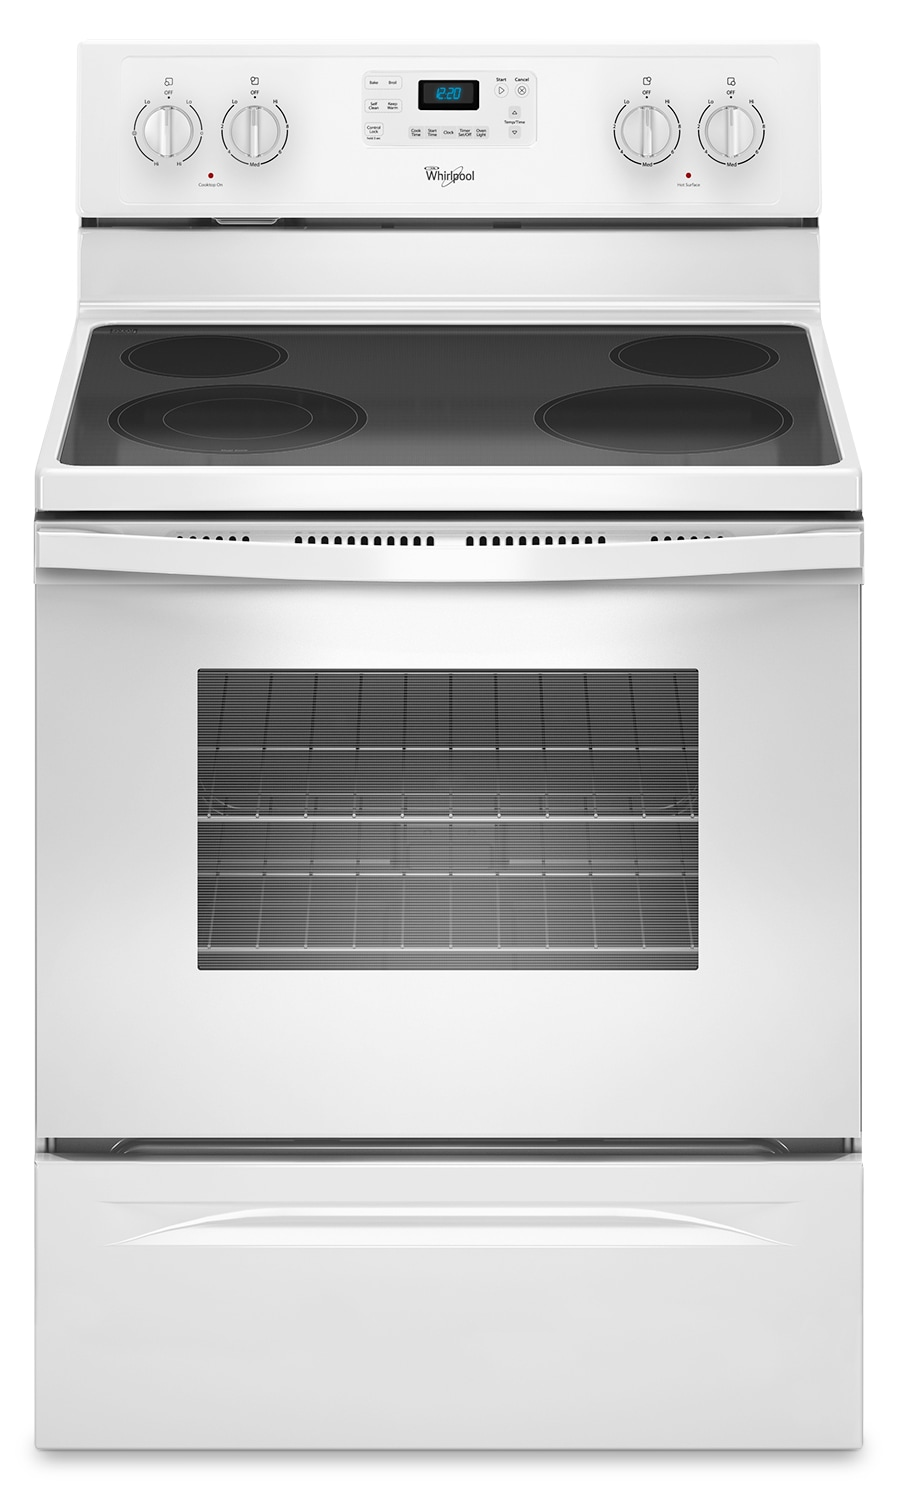 Cooking Products - Whirlpool Electric Range - White - YWFE515S0EW